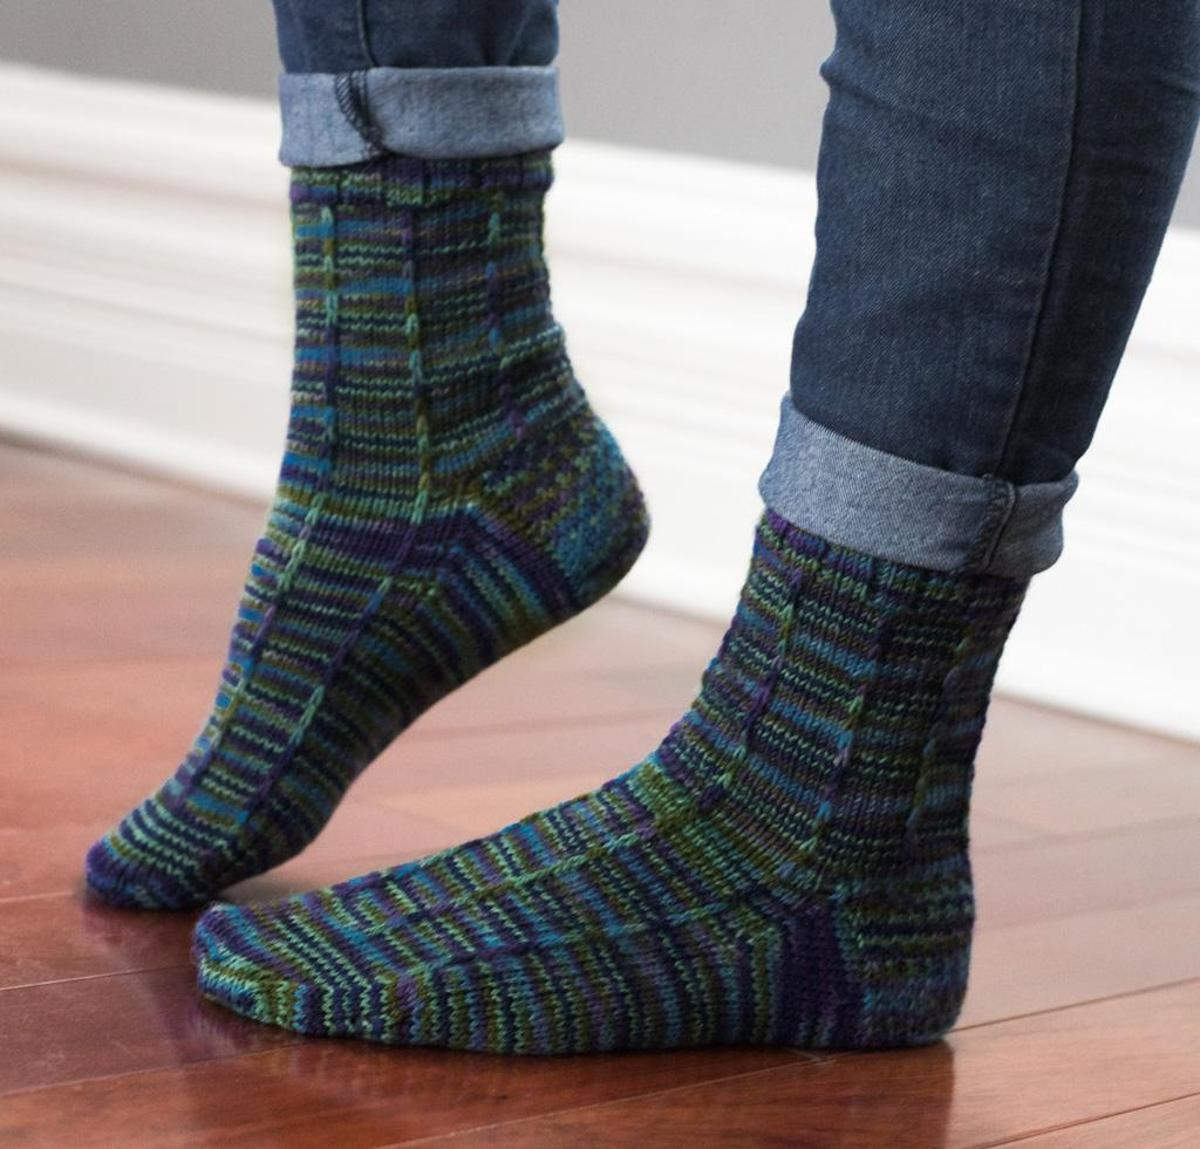 Atlantic Current Socks Knitting Kit